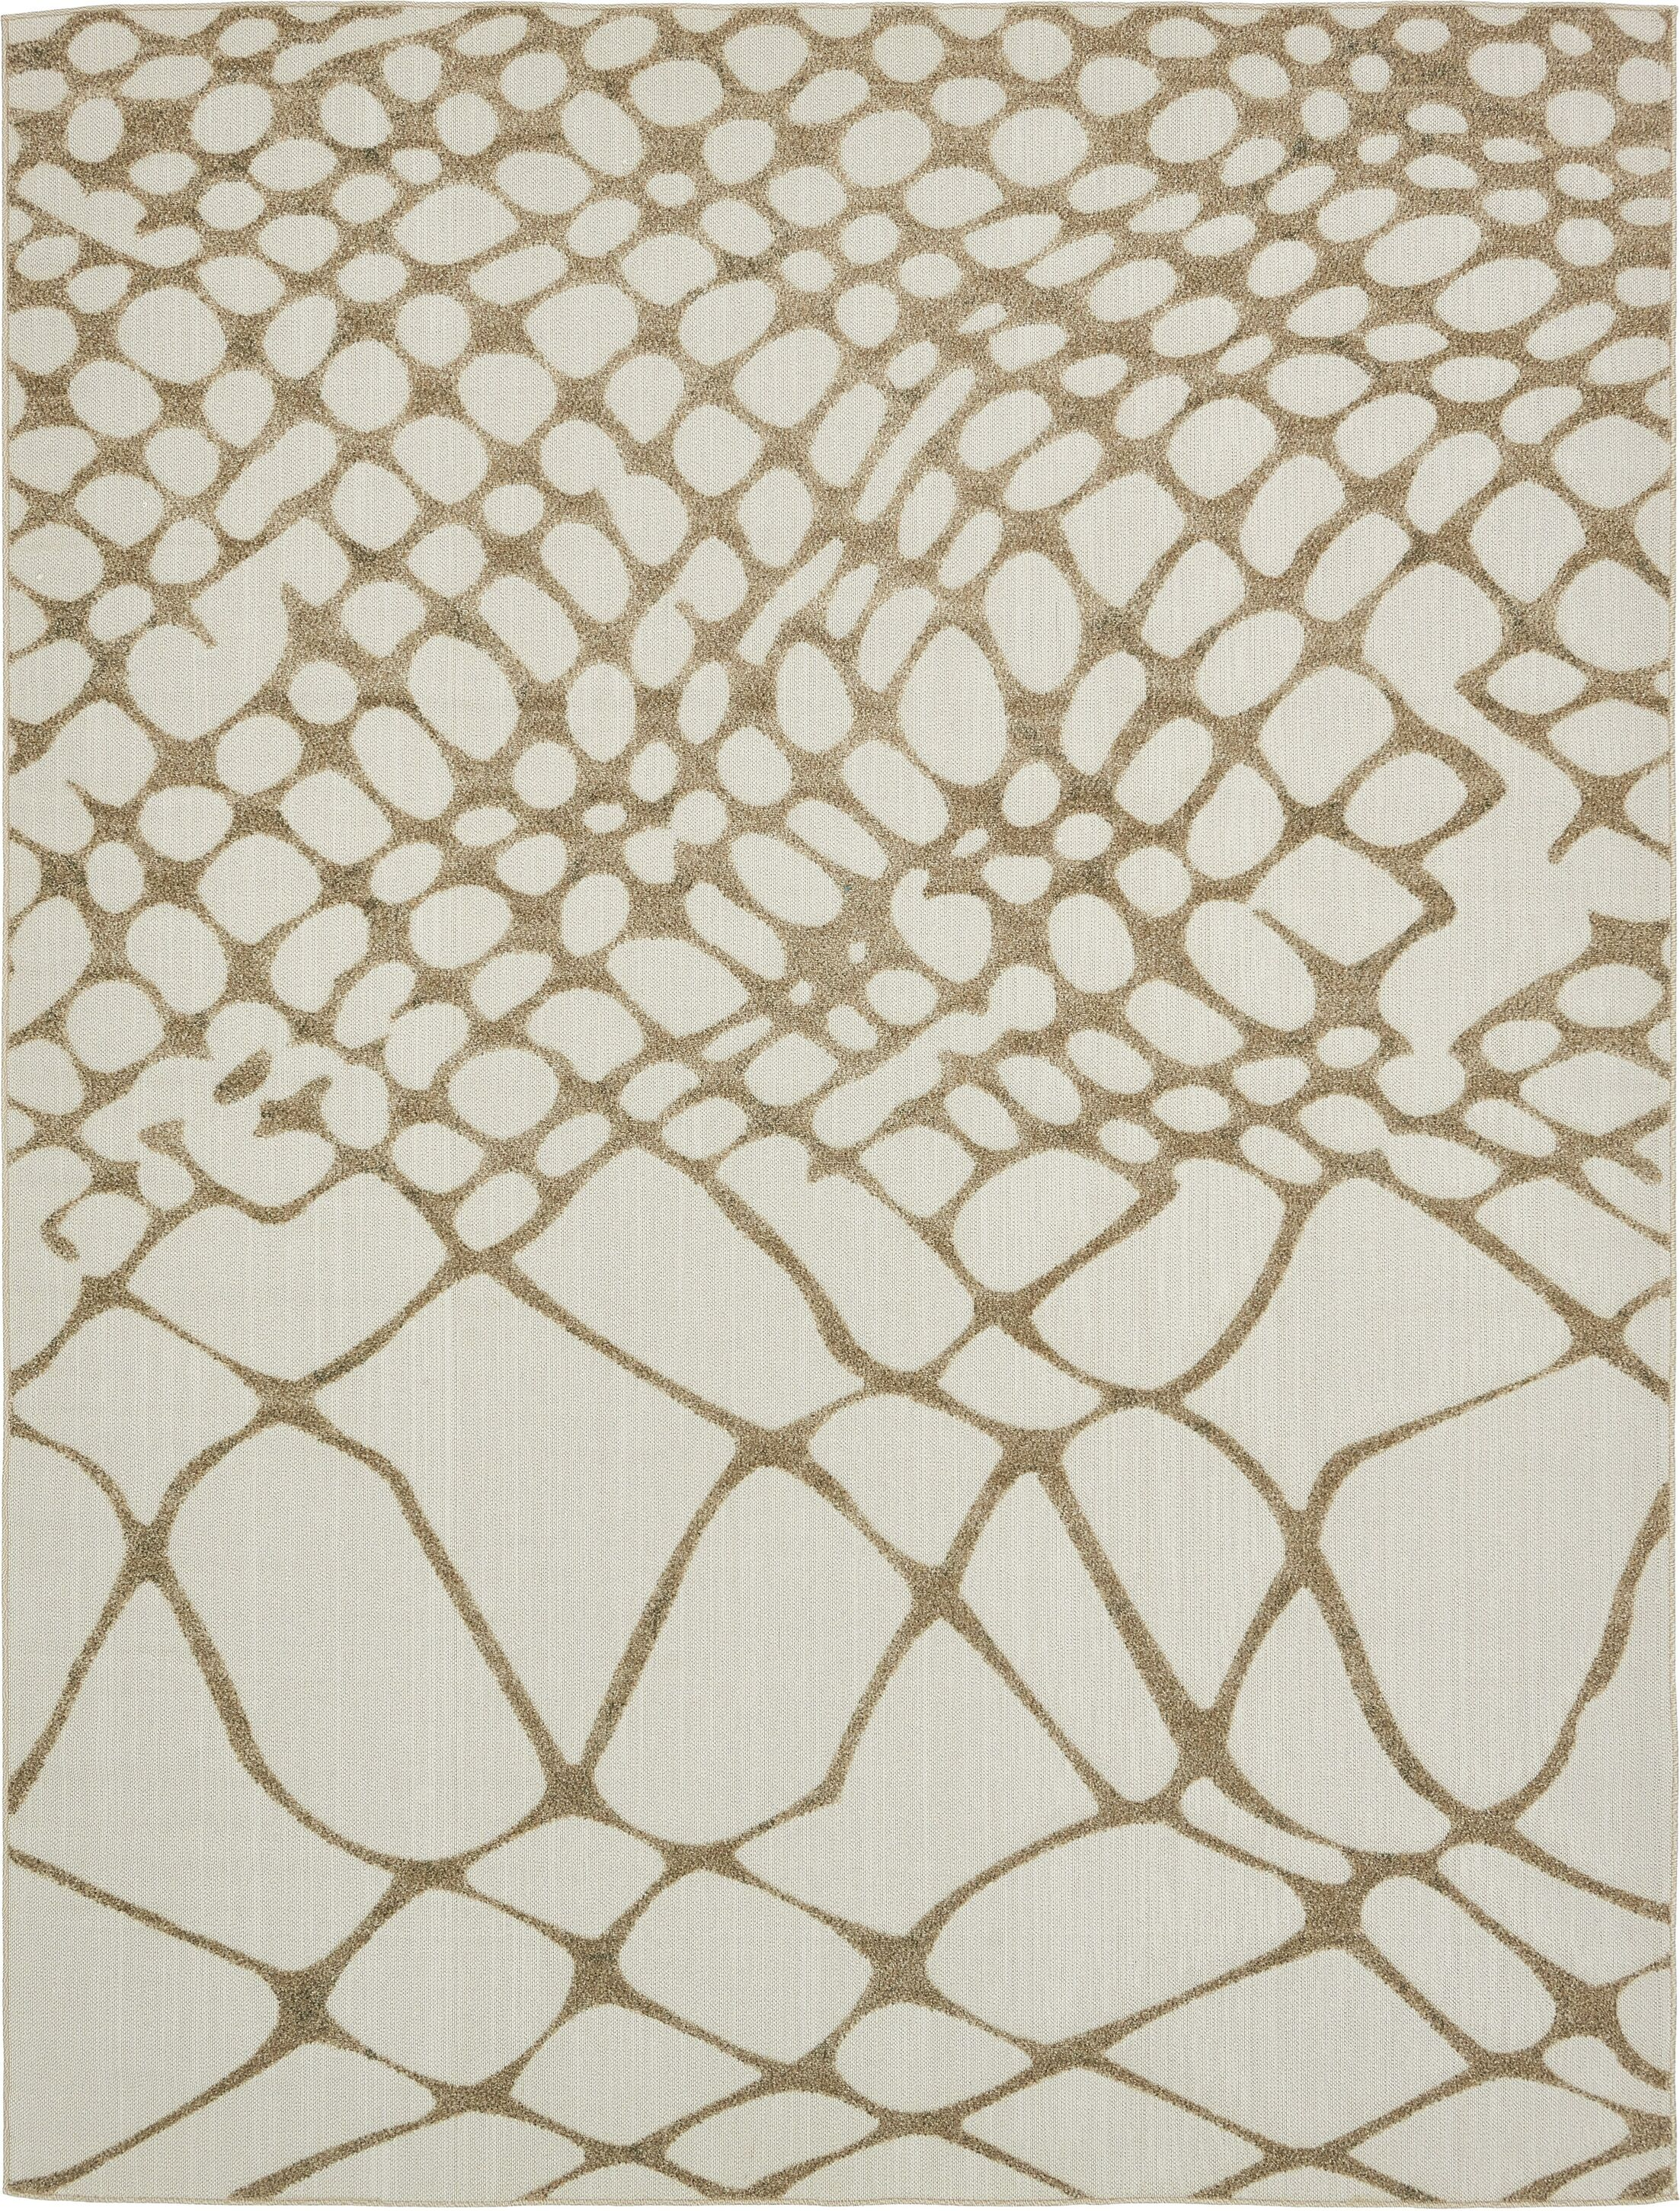 Jessie Cream Indoor/Outdoor Area Rug Rug Size: Rectangle 9' x 12'